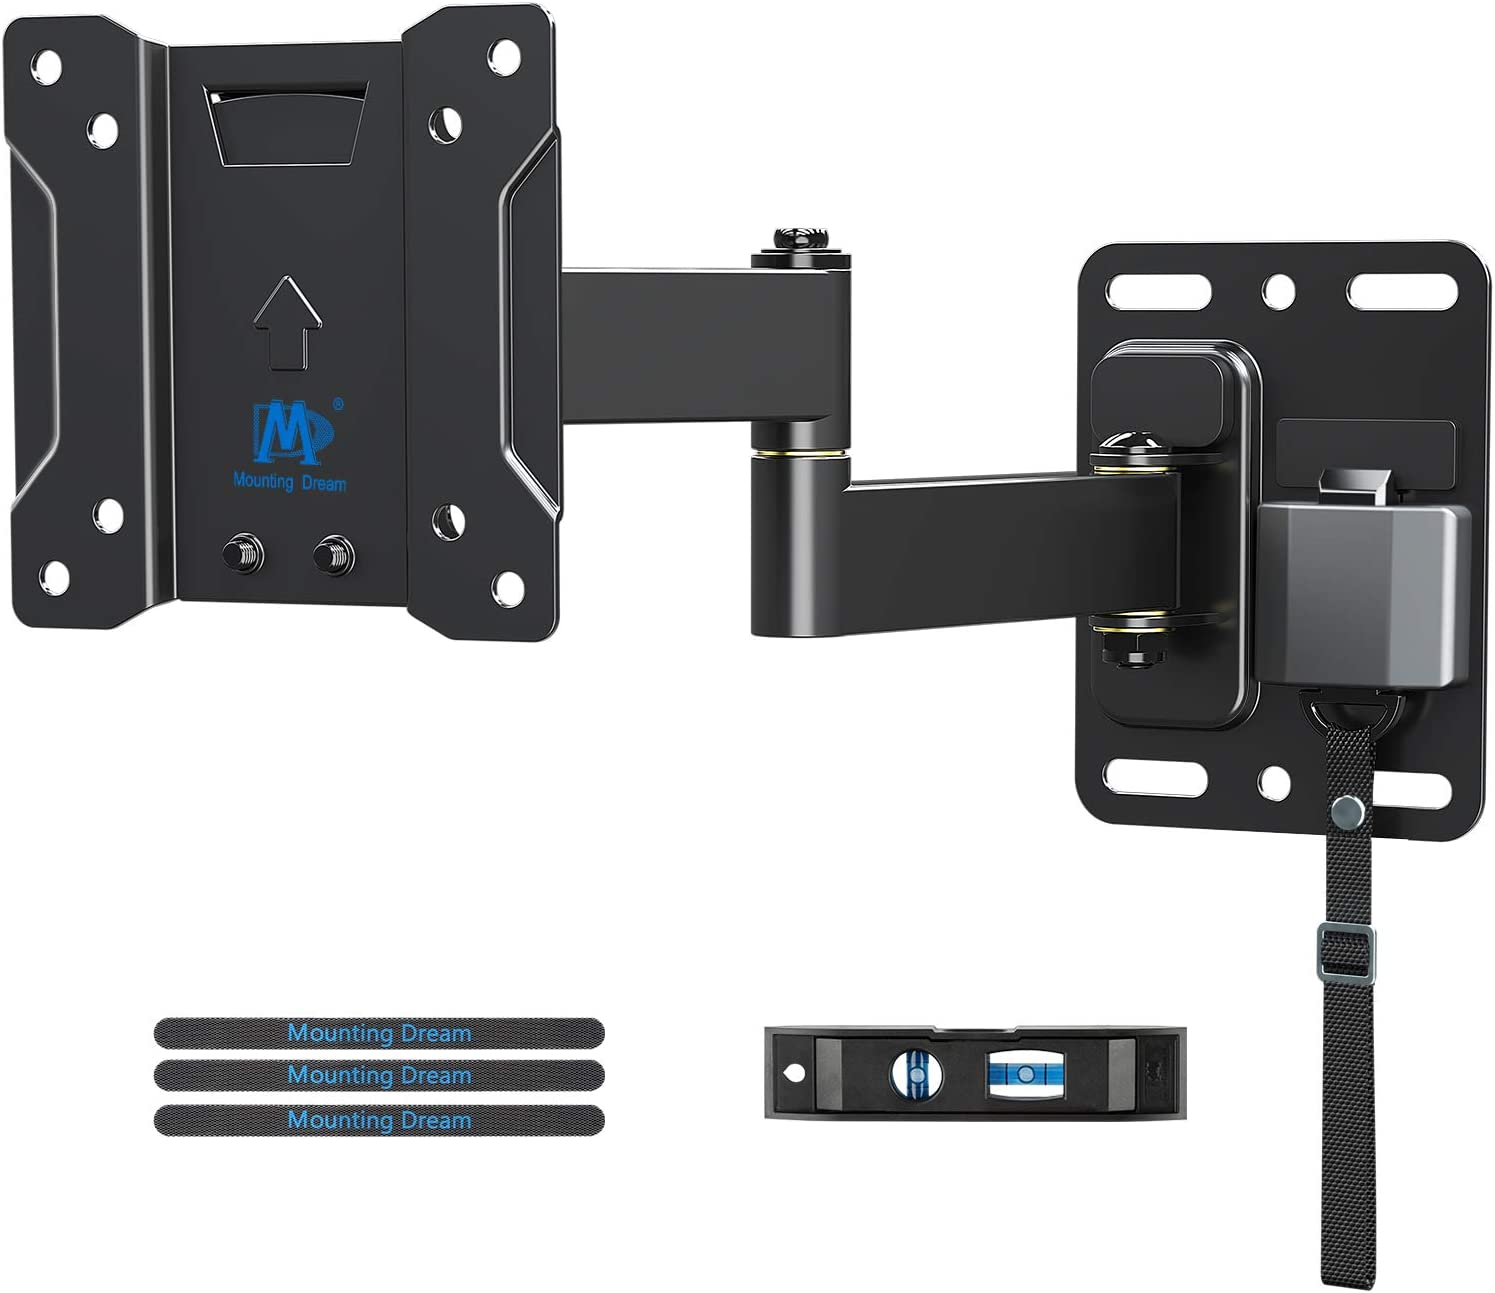 MD TV Mount Lockable RV TV Mount for 10-26 Inch Flat Screen TV